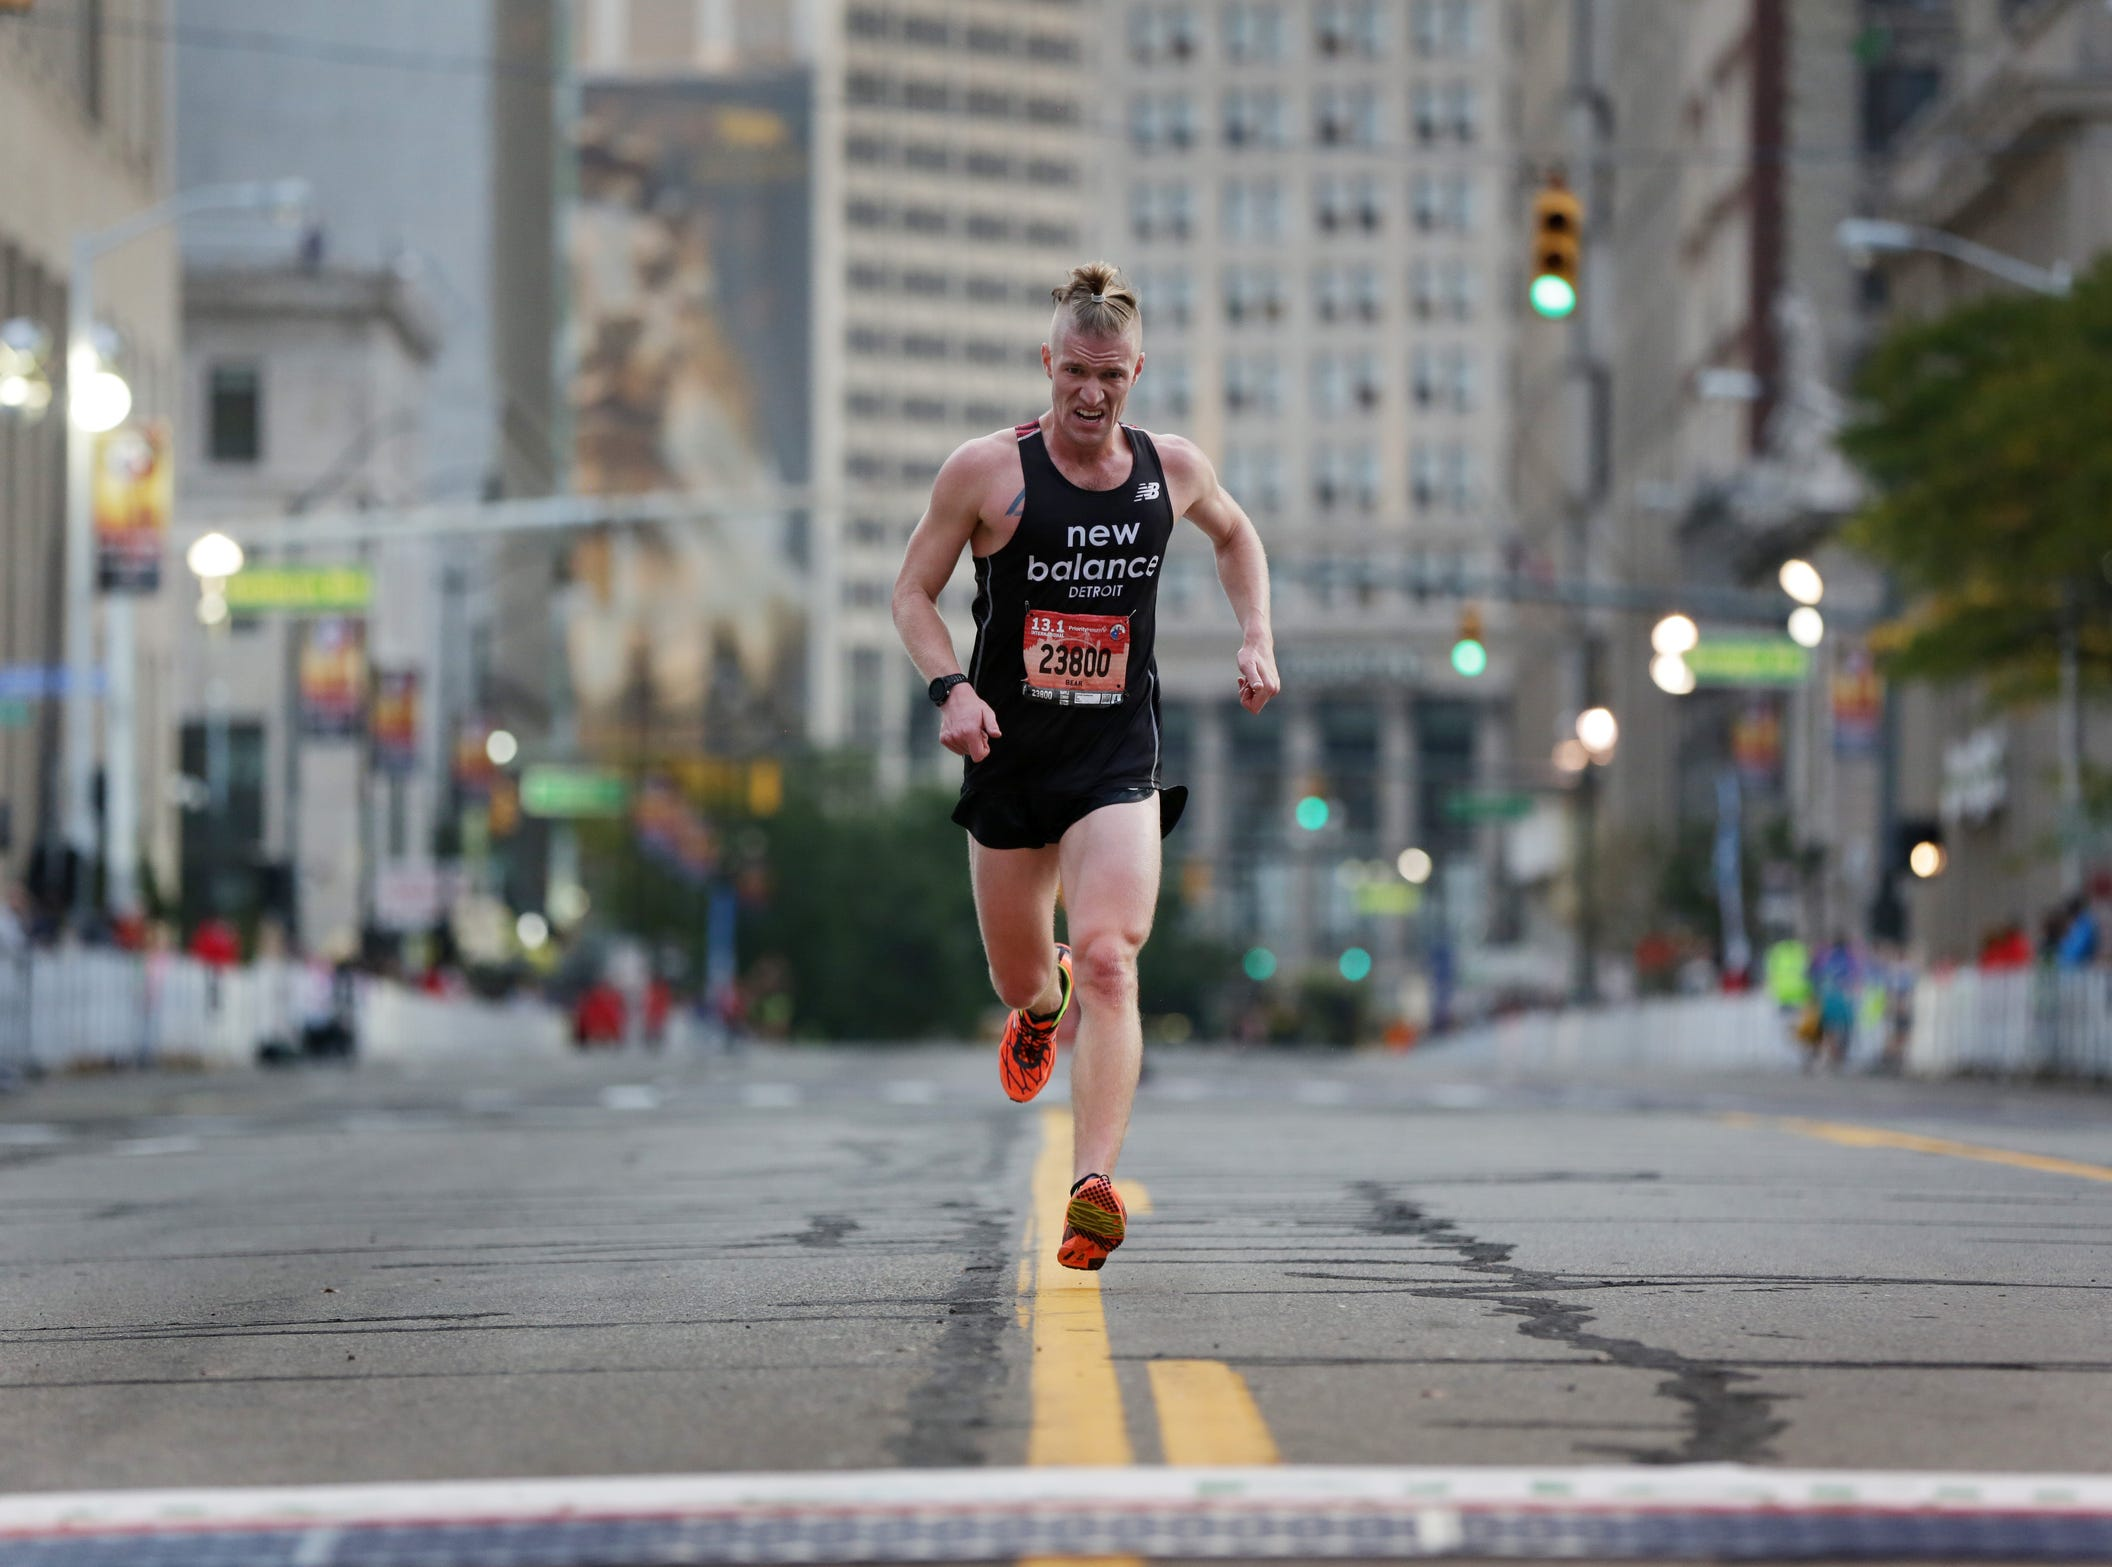 Bennett Prudhomme reaches the finish line of the half marathon during the 39th Annual Detroit Free Press/Talmer Bank Marathon in Detroit on Sunday, Oct. 16, 2016.